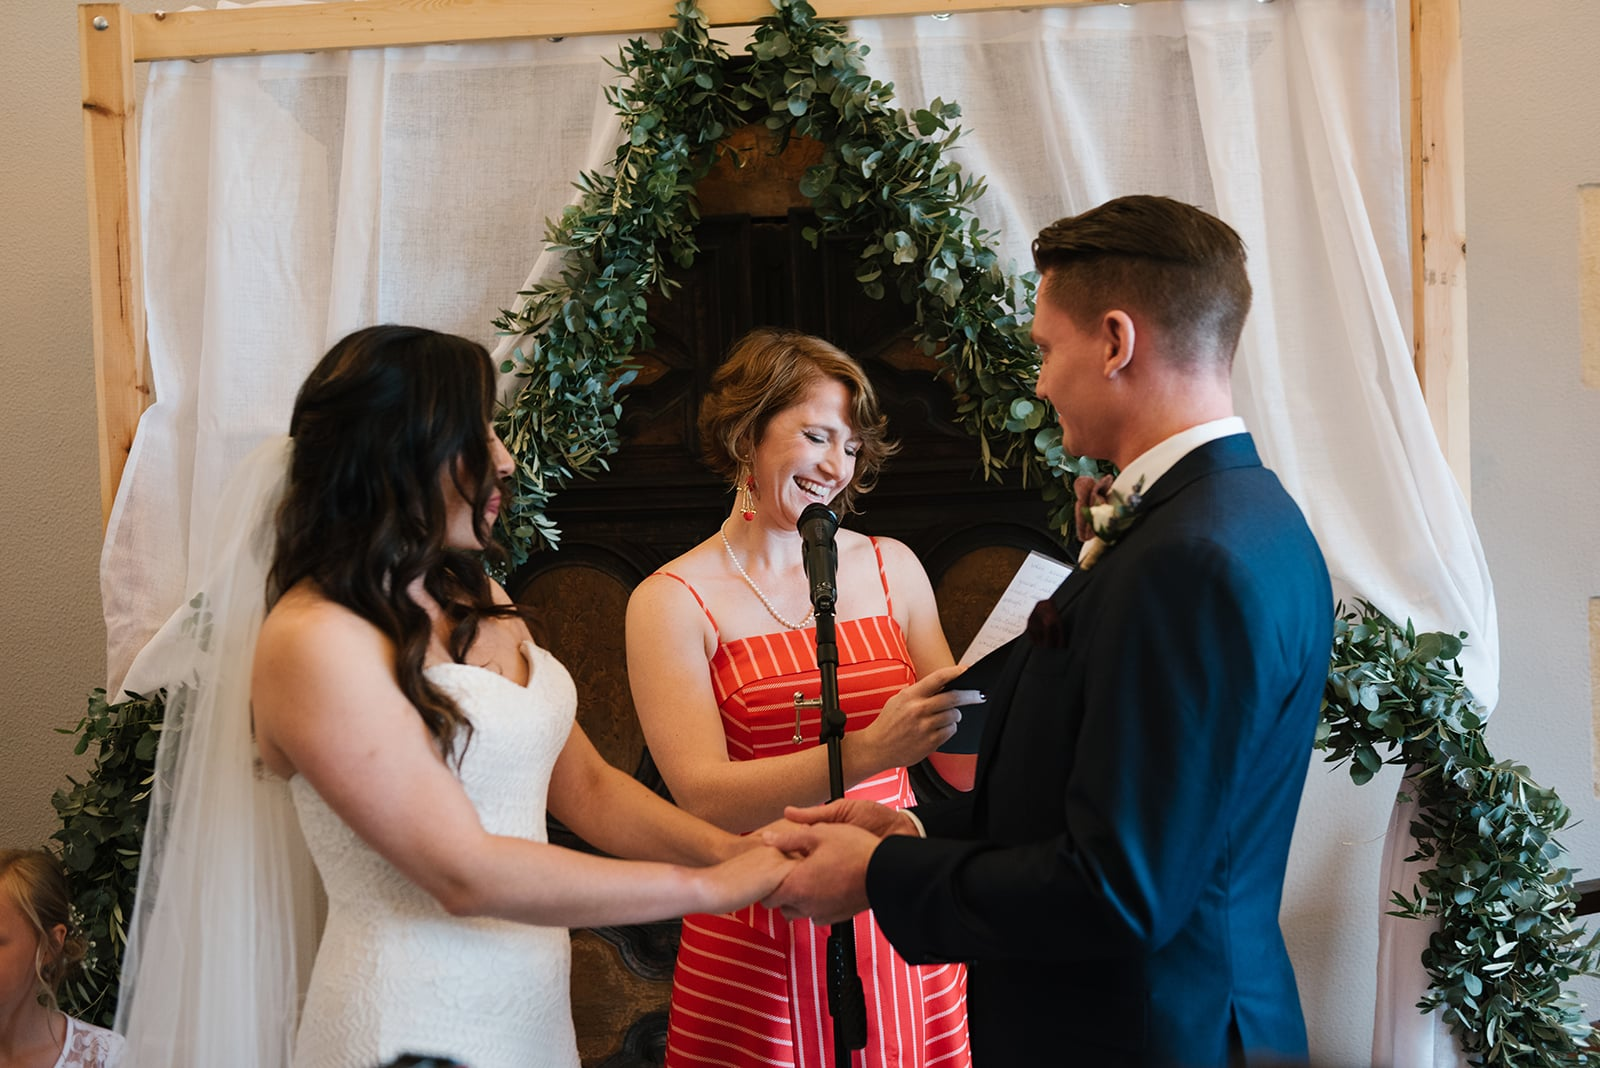 How To Become A Wedding Officiant.How To Become A Wedding Officiant In Nyc In 3 Steps New York